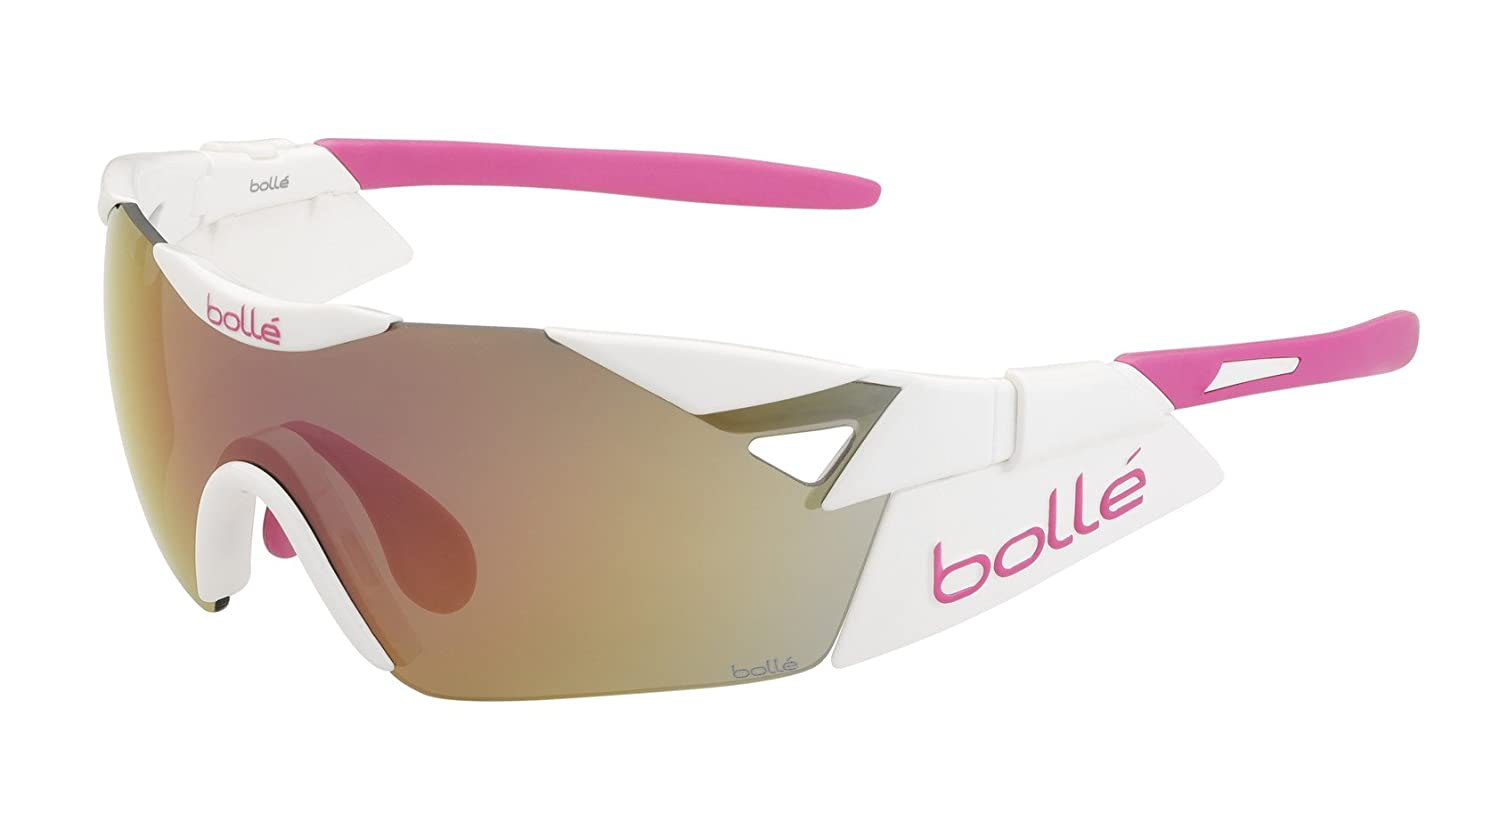 bolle(ボレー) サングラス 11913 6th Sense-S Shiny White Pink/Rose Gold oleo AF   B00W6NLDPU